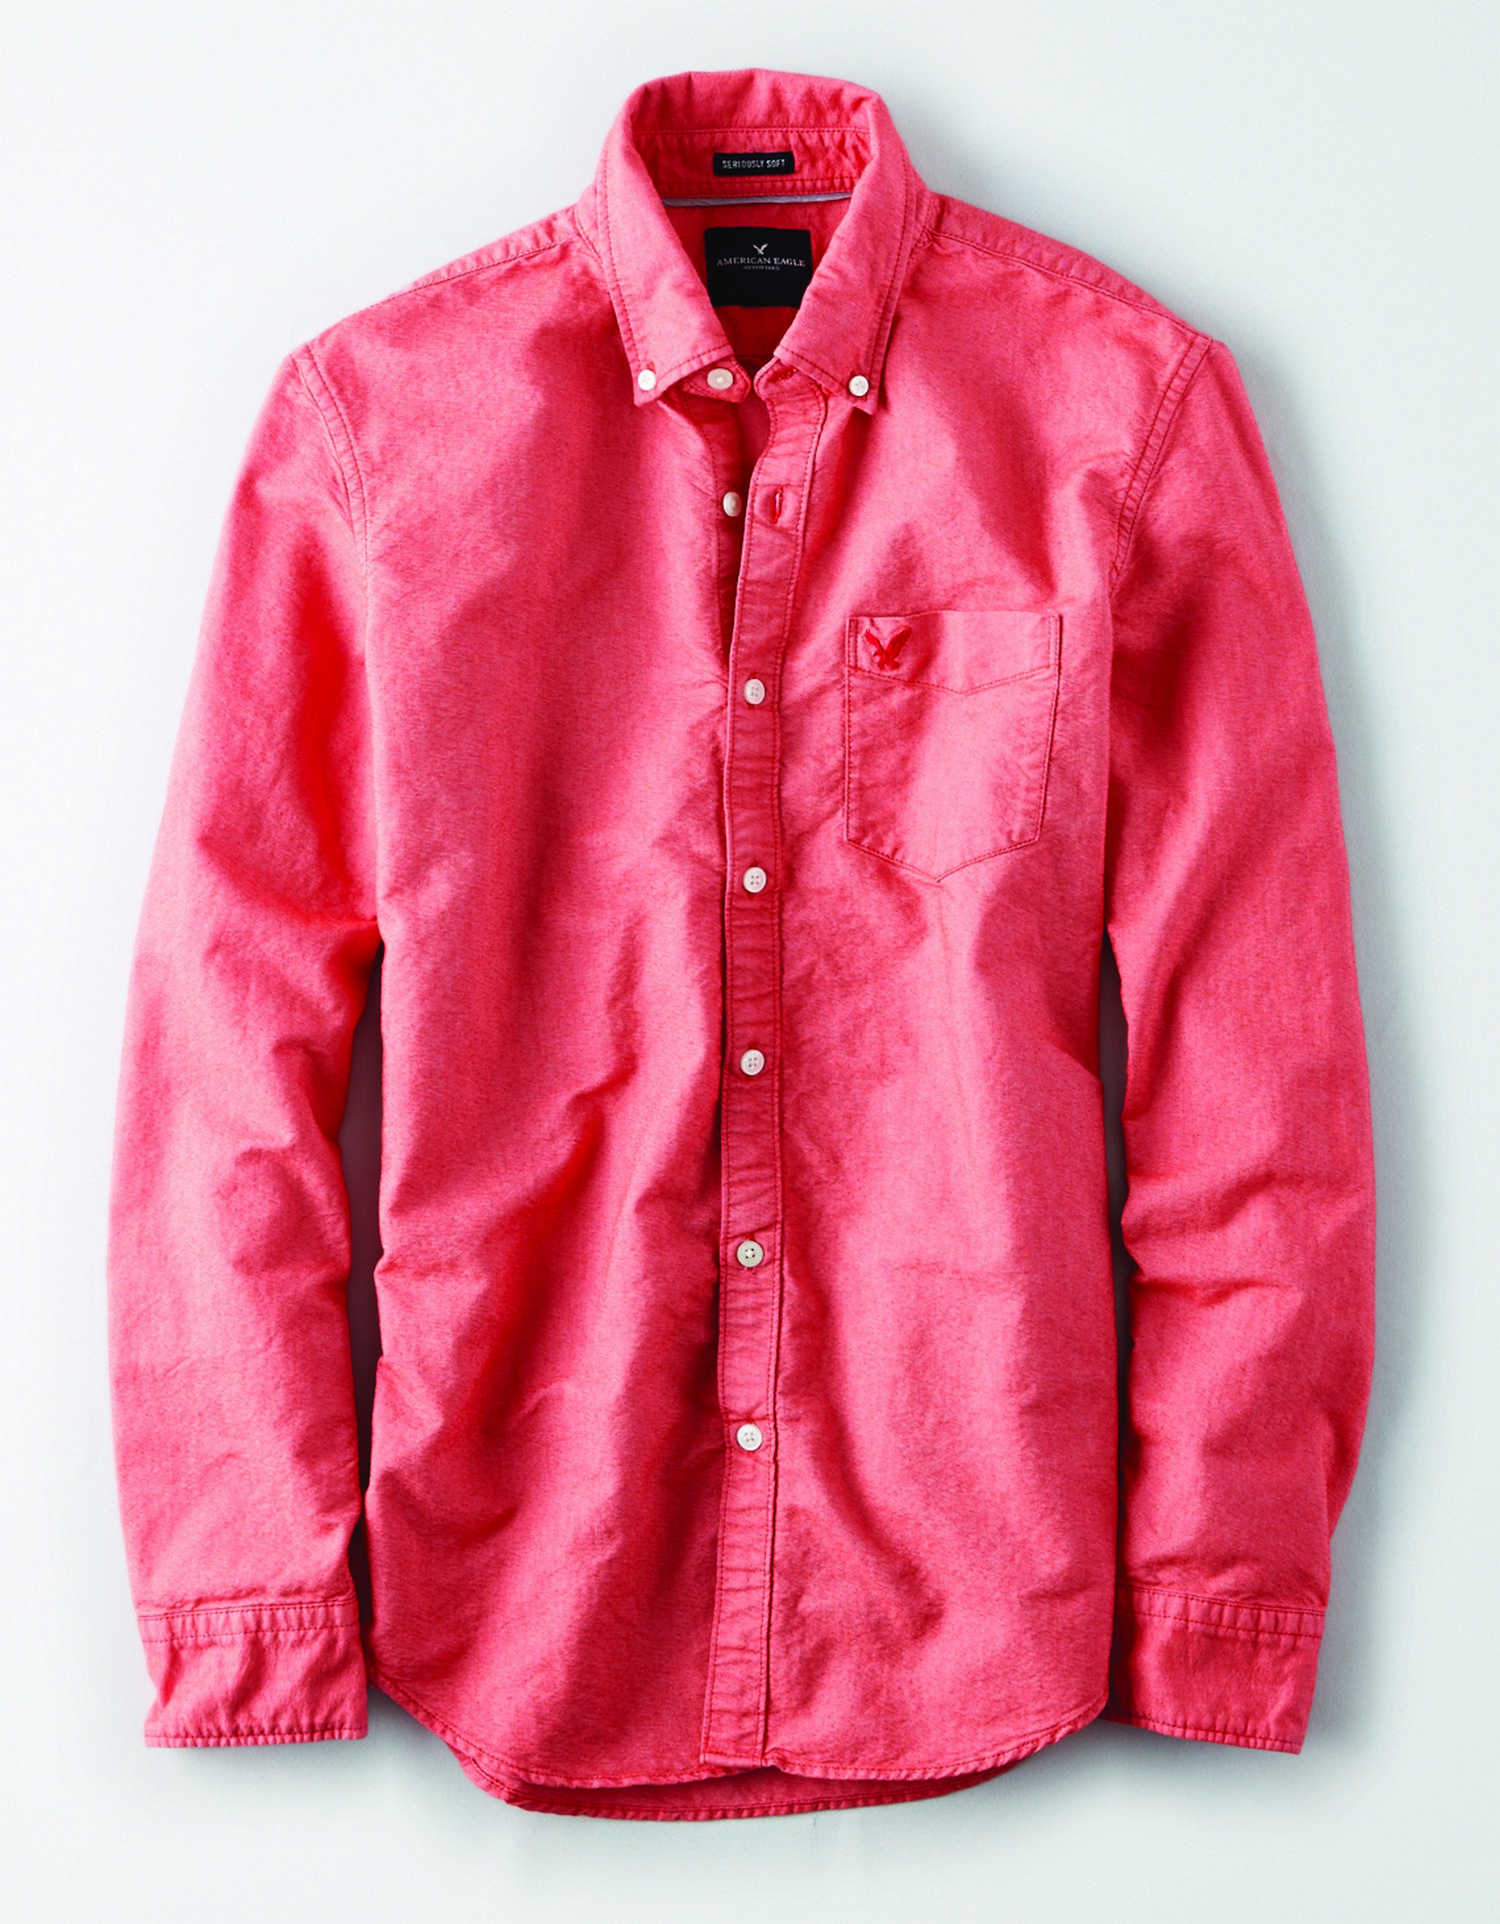 AE - INTL - Apparel - M - SF YD OXFORD - Red - Left chest pocket - red embroidered eagle on pocket - button collar BG